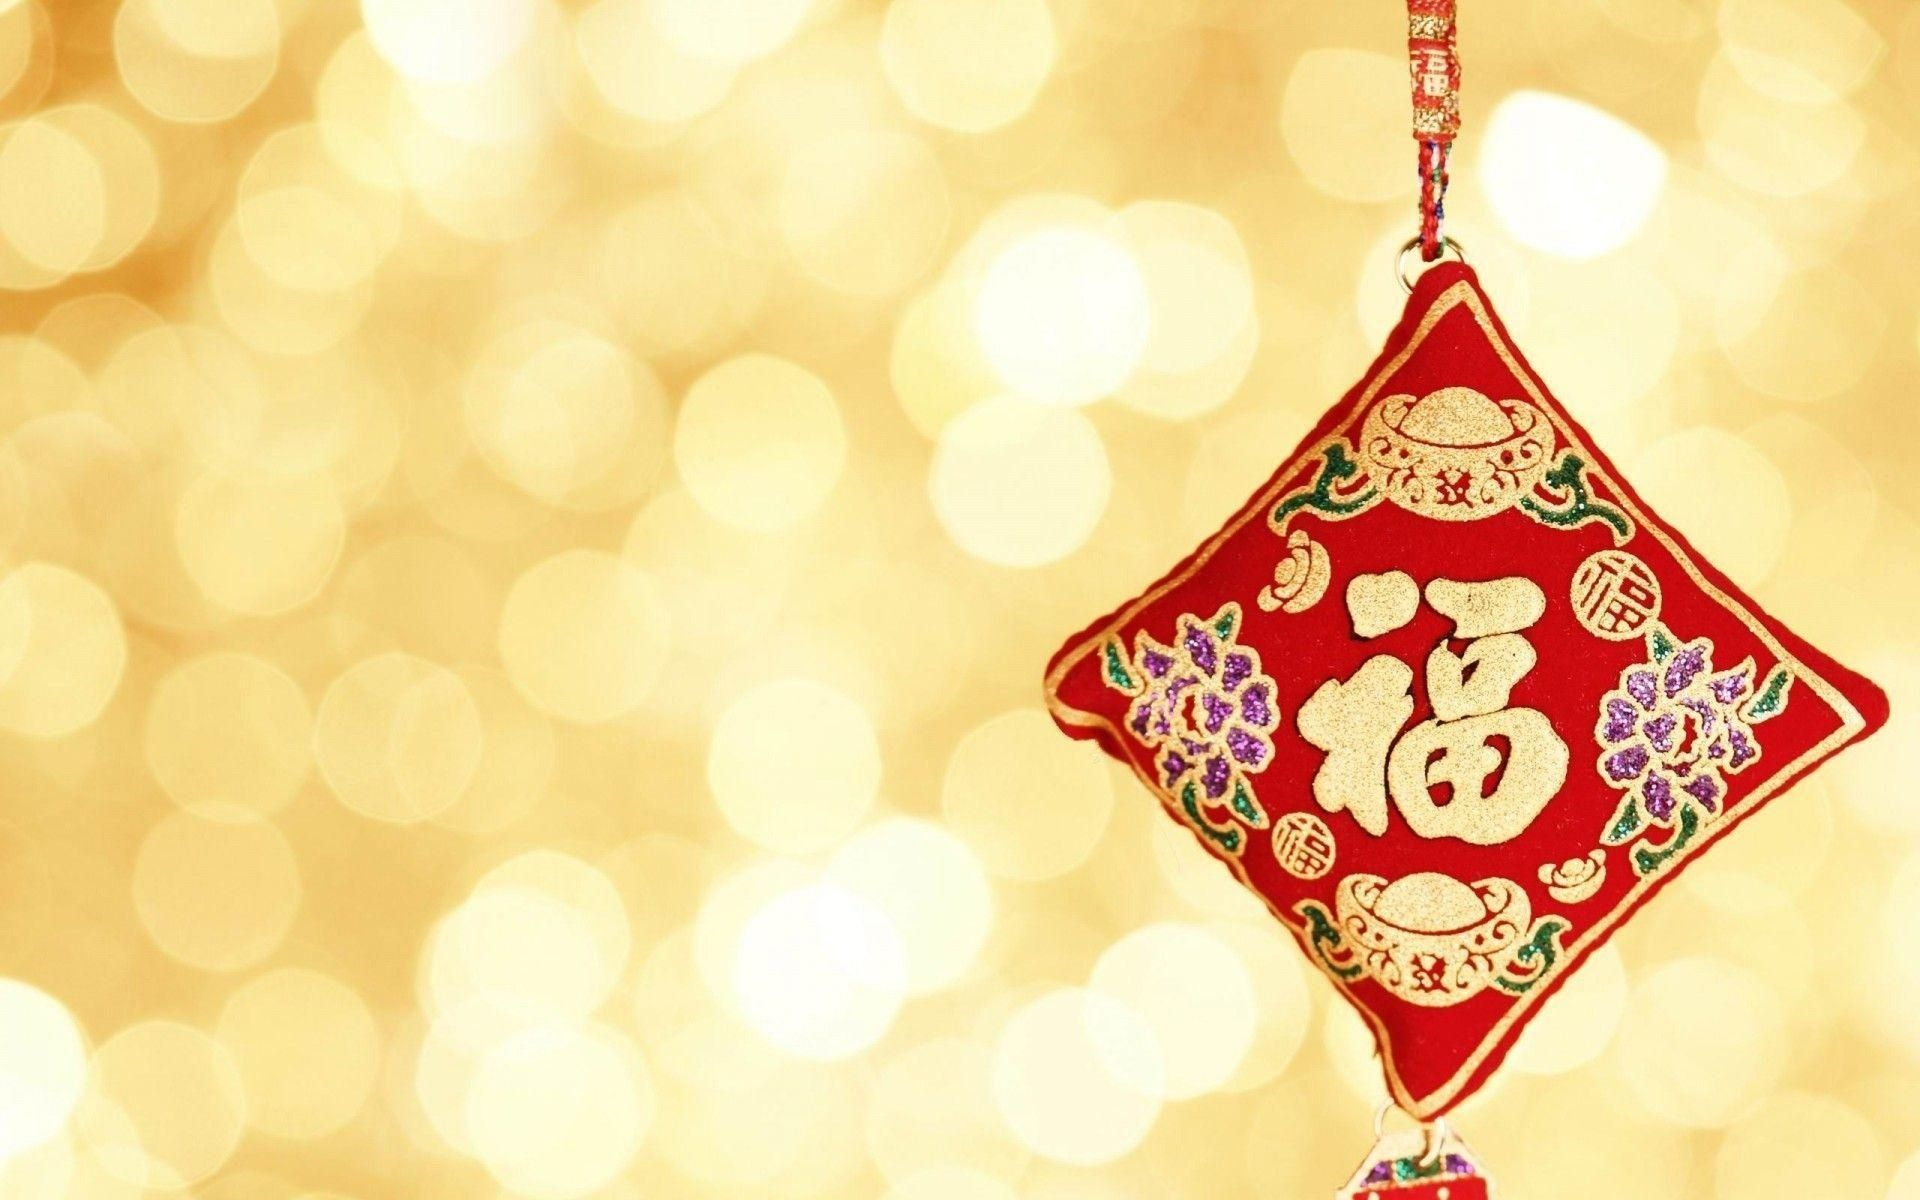 10 Most Popular Chinese New Year Wall Paper Full Hd 1920 1080 For Pc Background Chinese New Year Wallpaper New Year Wallpaper Hd Chinese New Year Greeting